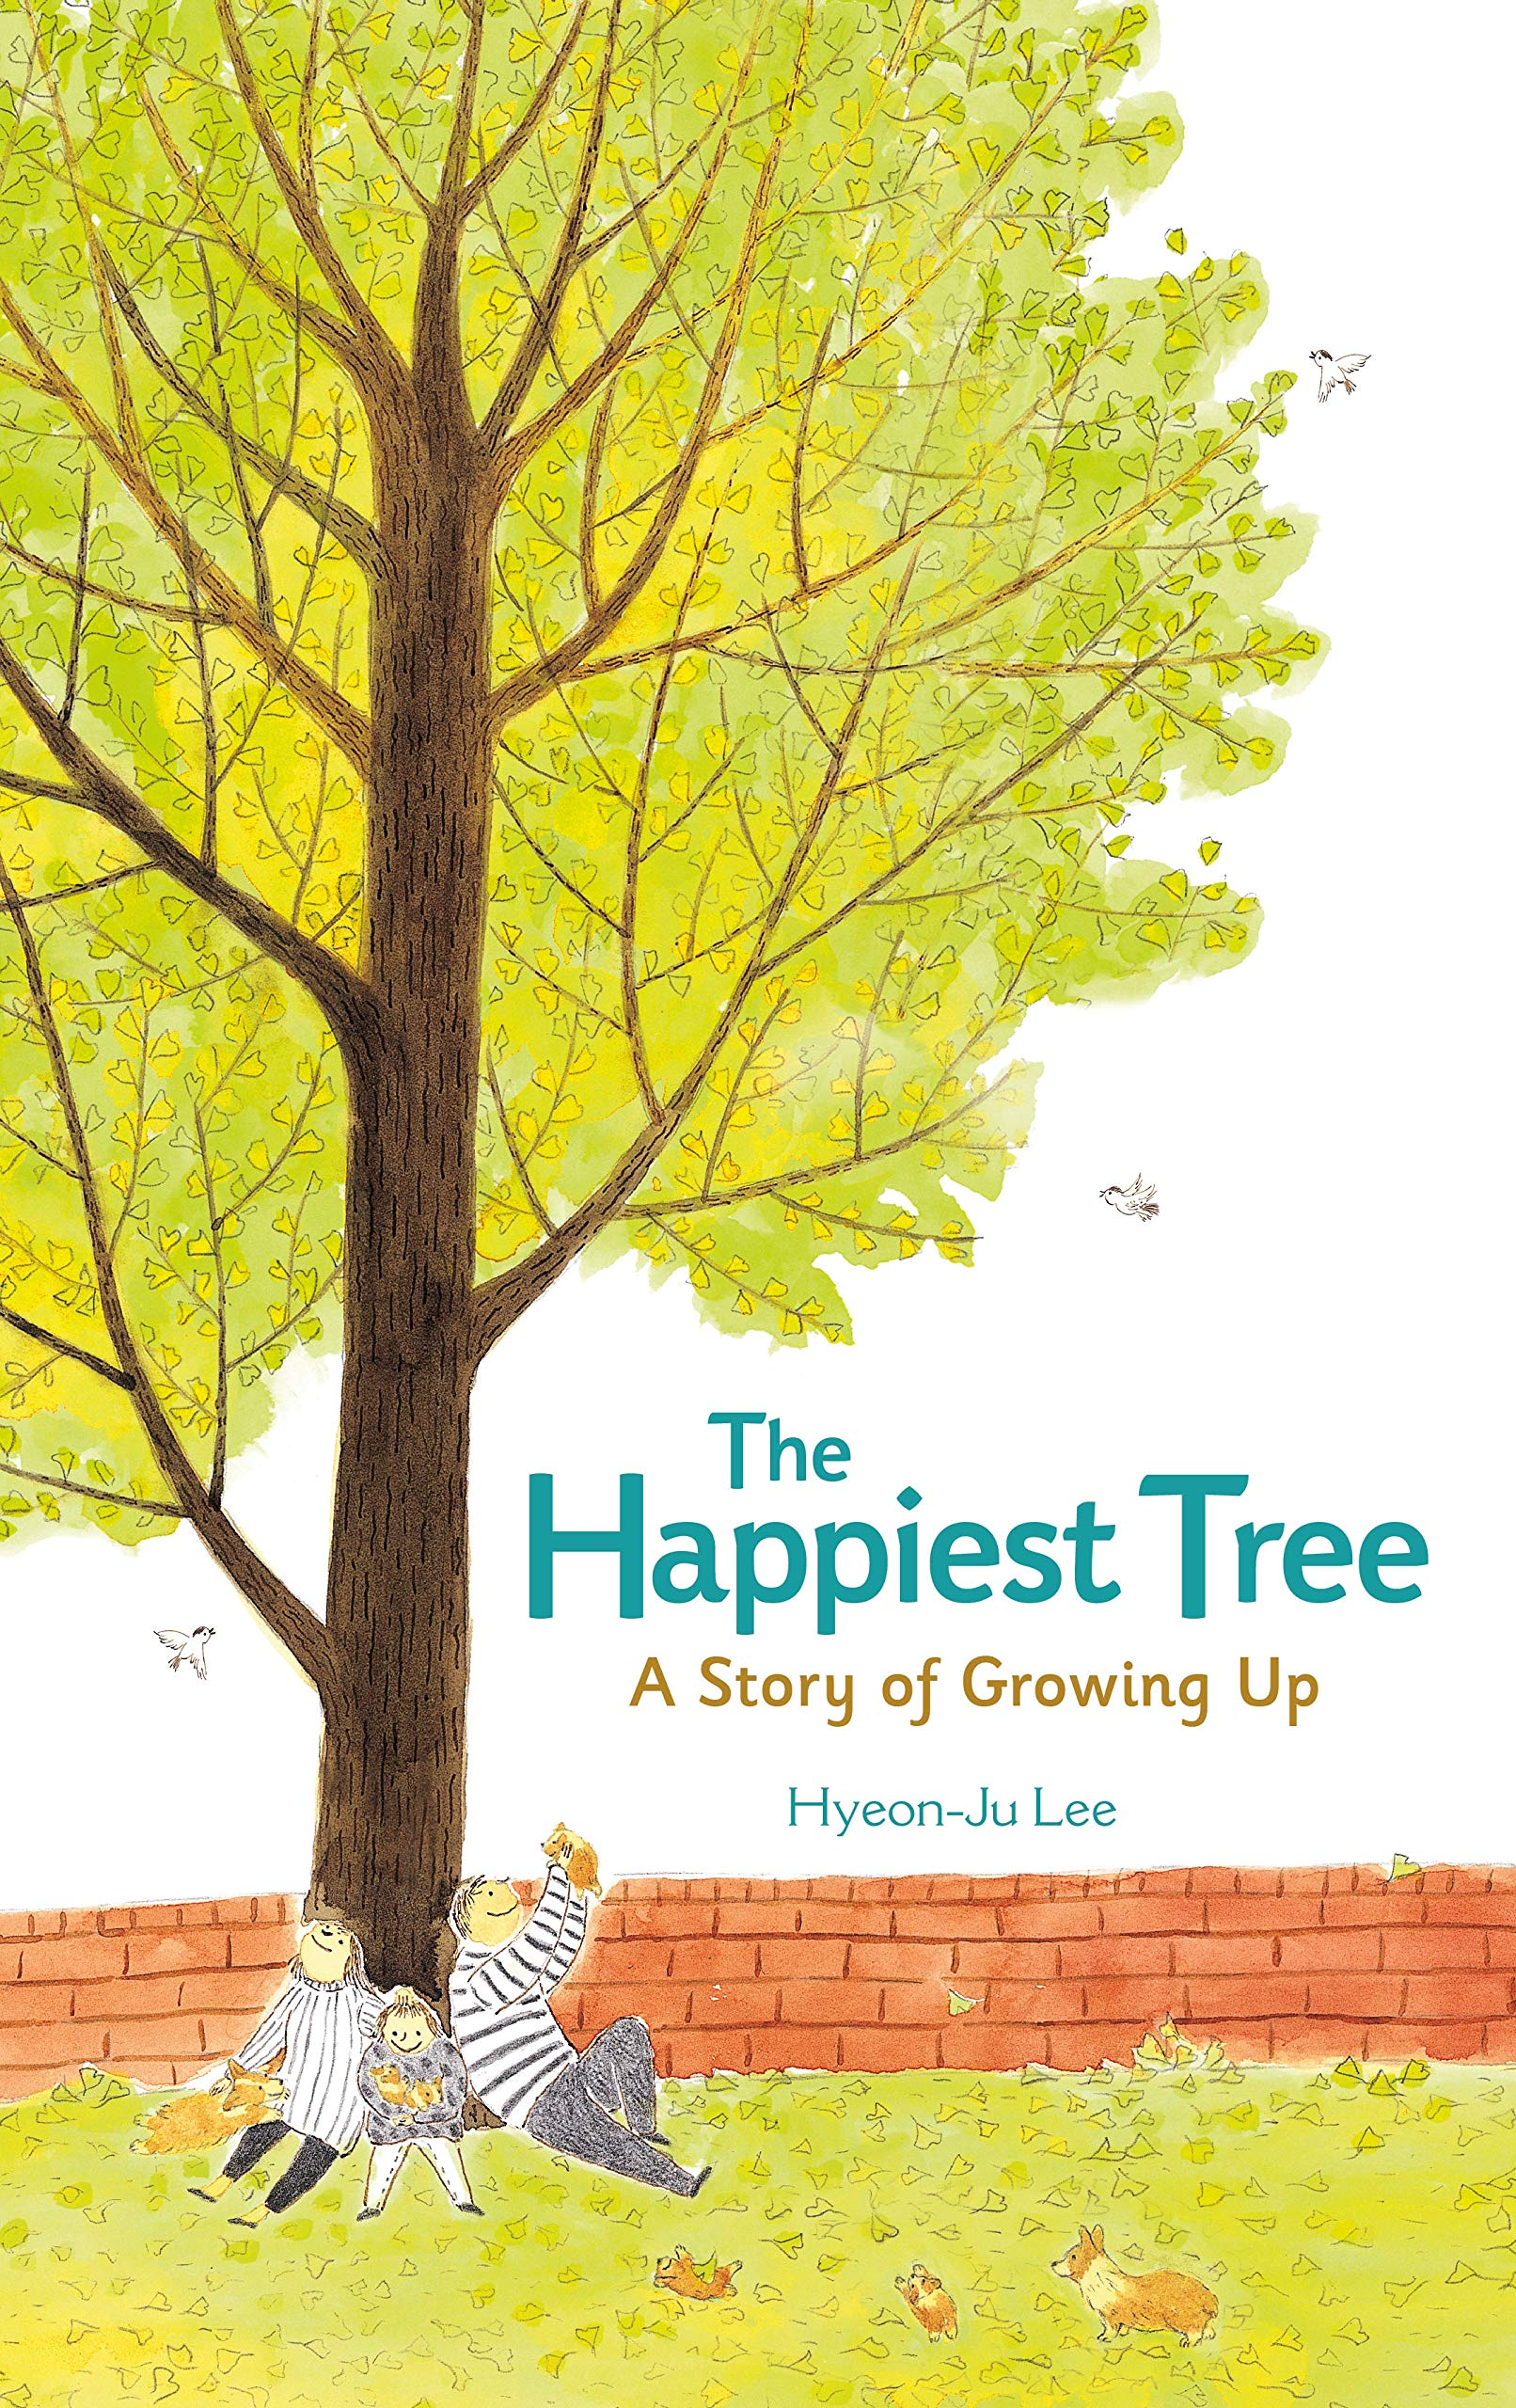 Hyeon-Ju Lee, The Happiest Tree: A Story of Growing Up, Feiwel & Friends